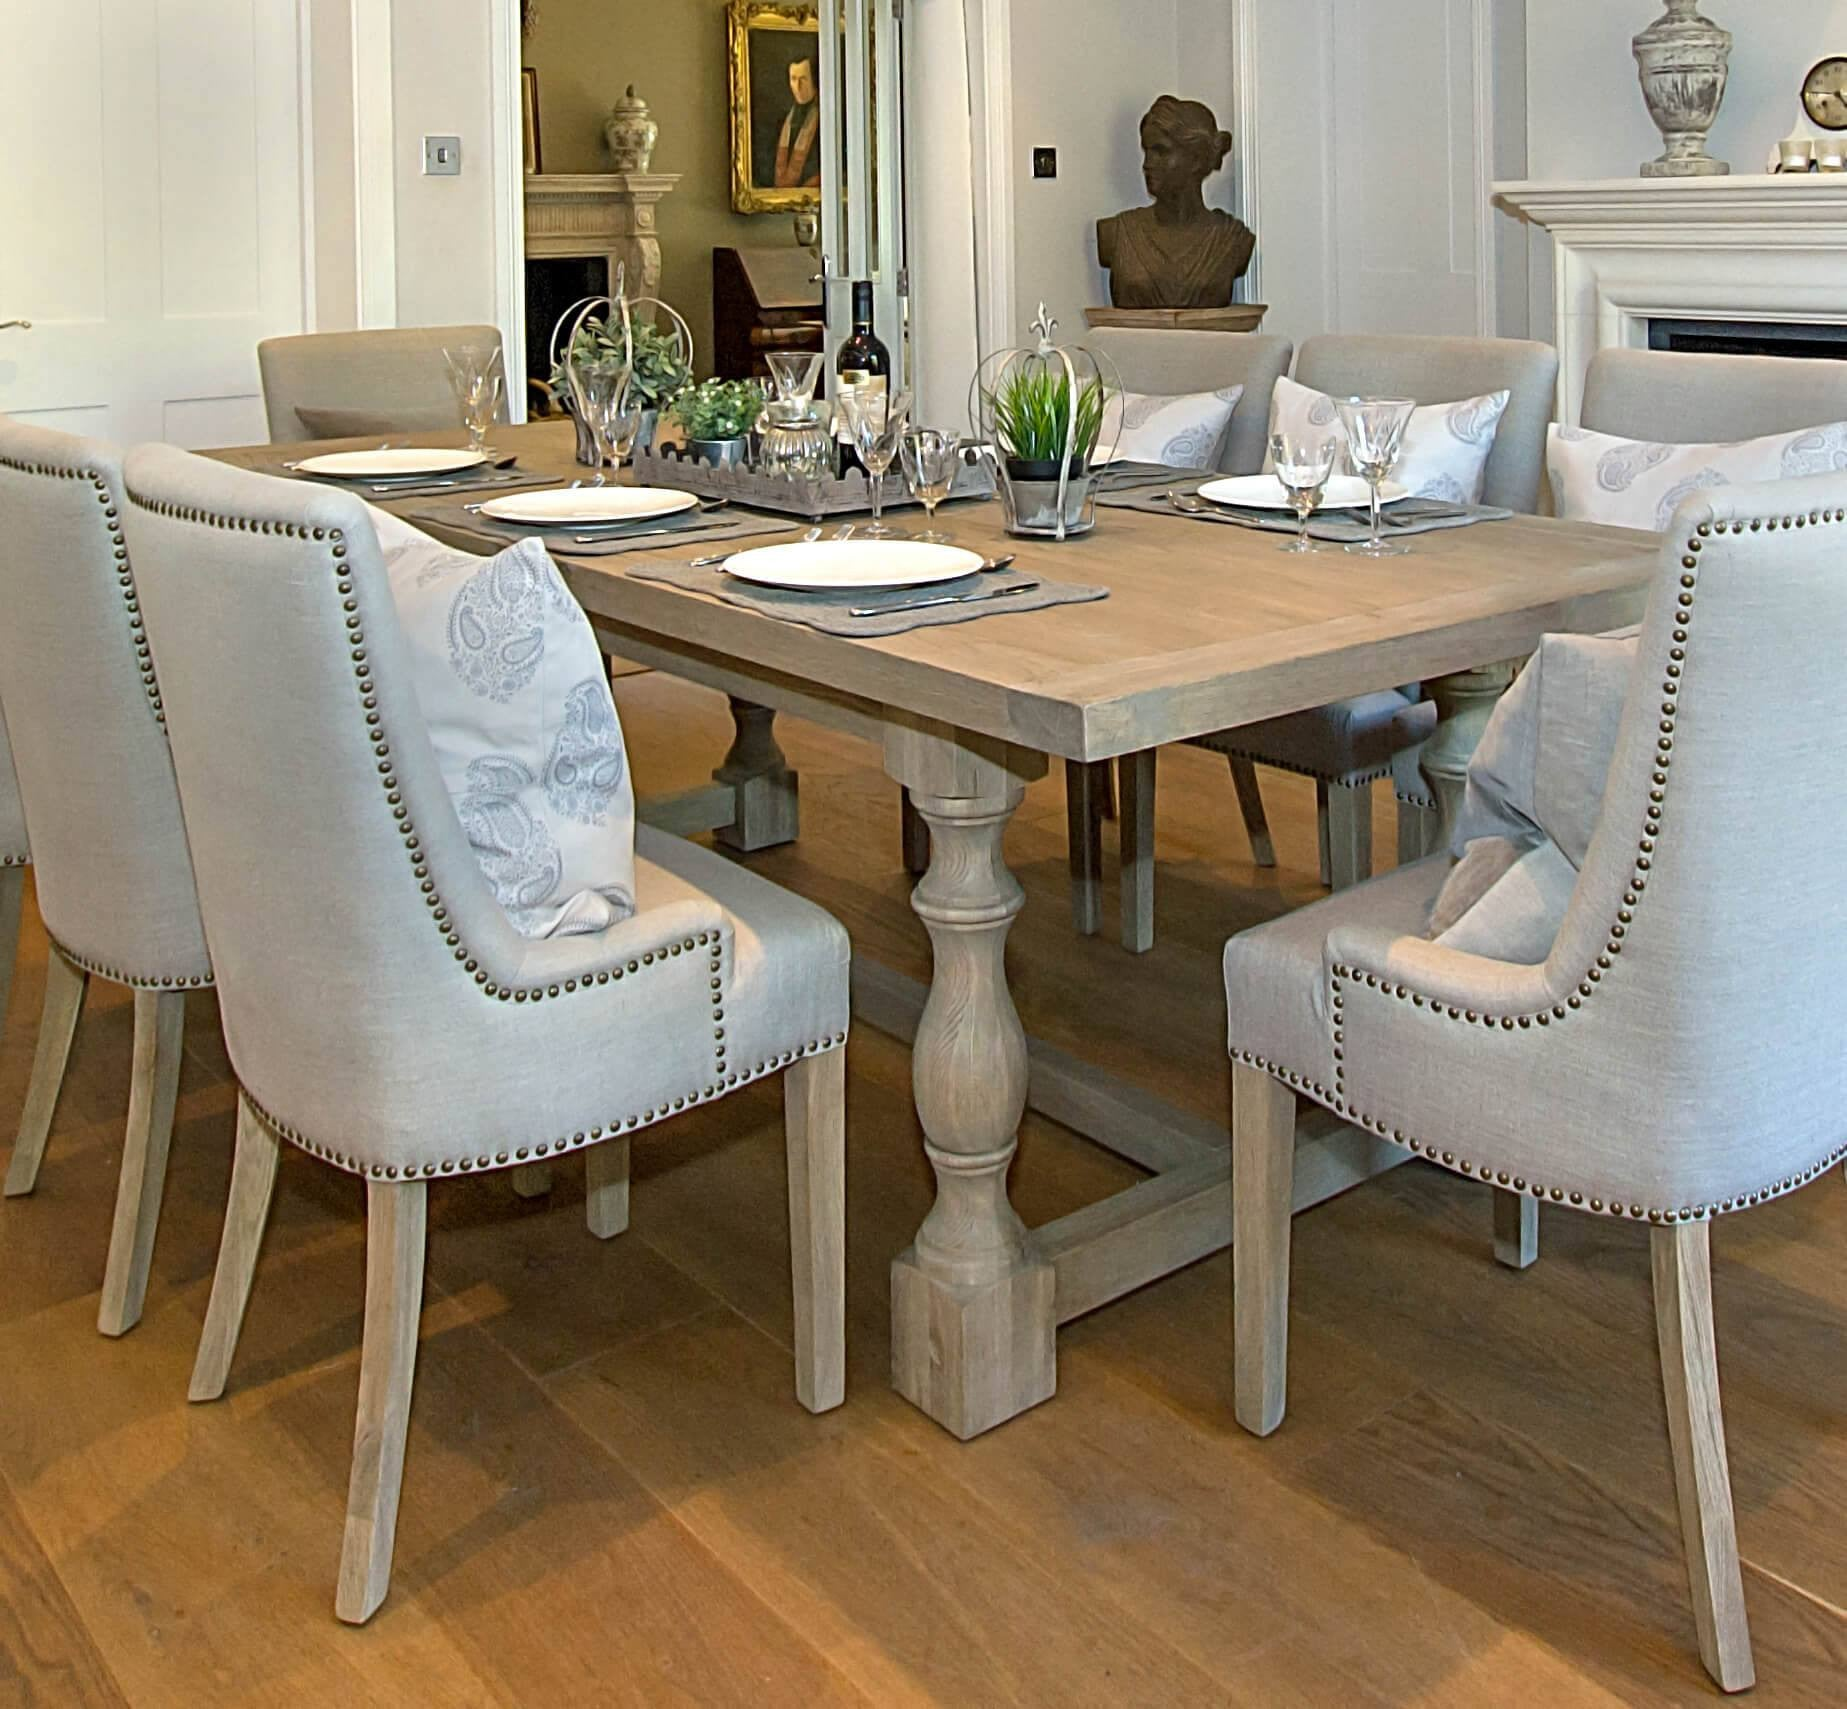 Montague Large Weathered Oak Rectangular Dining Table ...